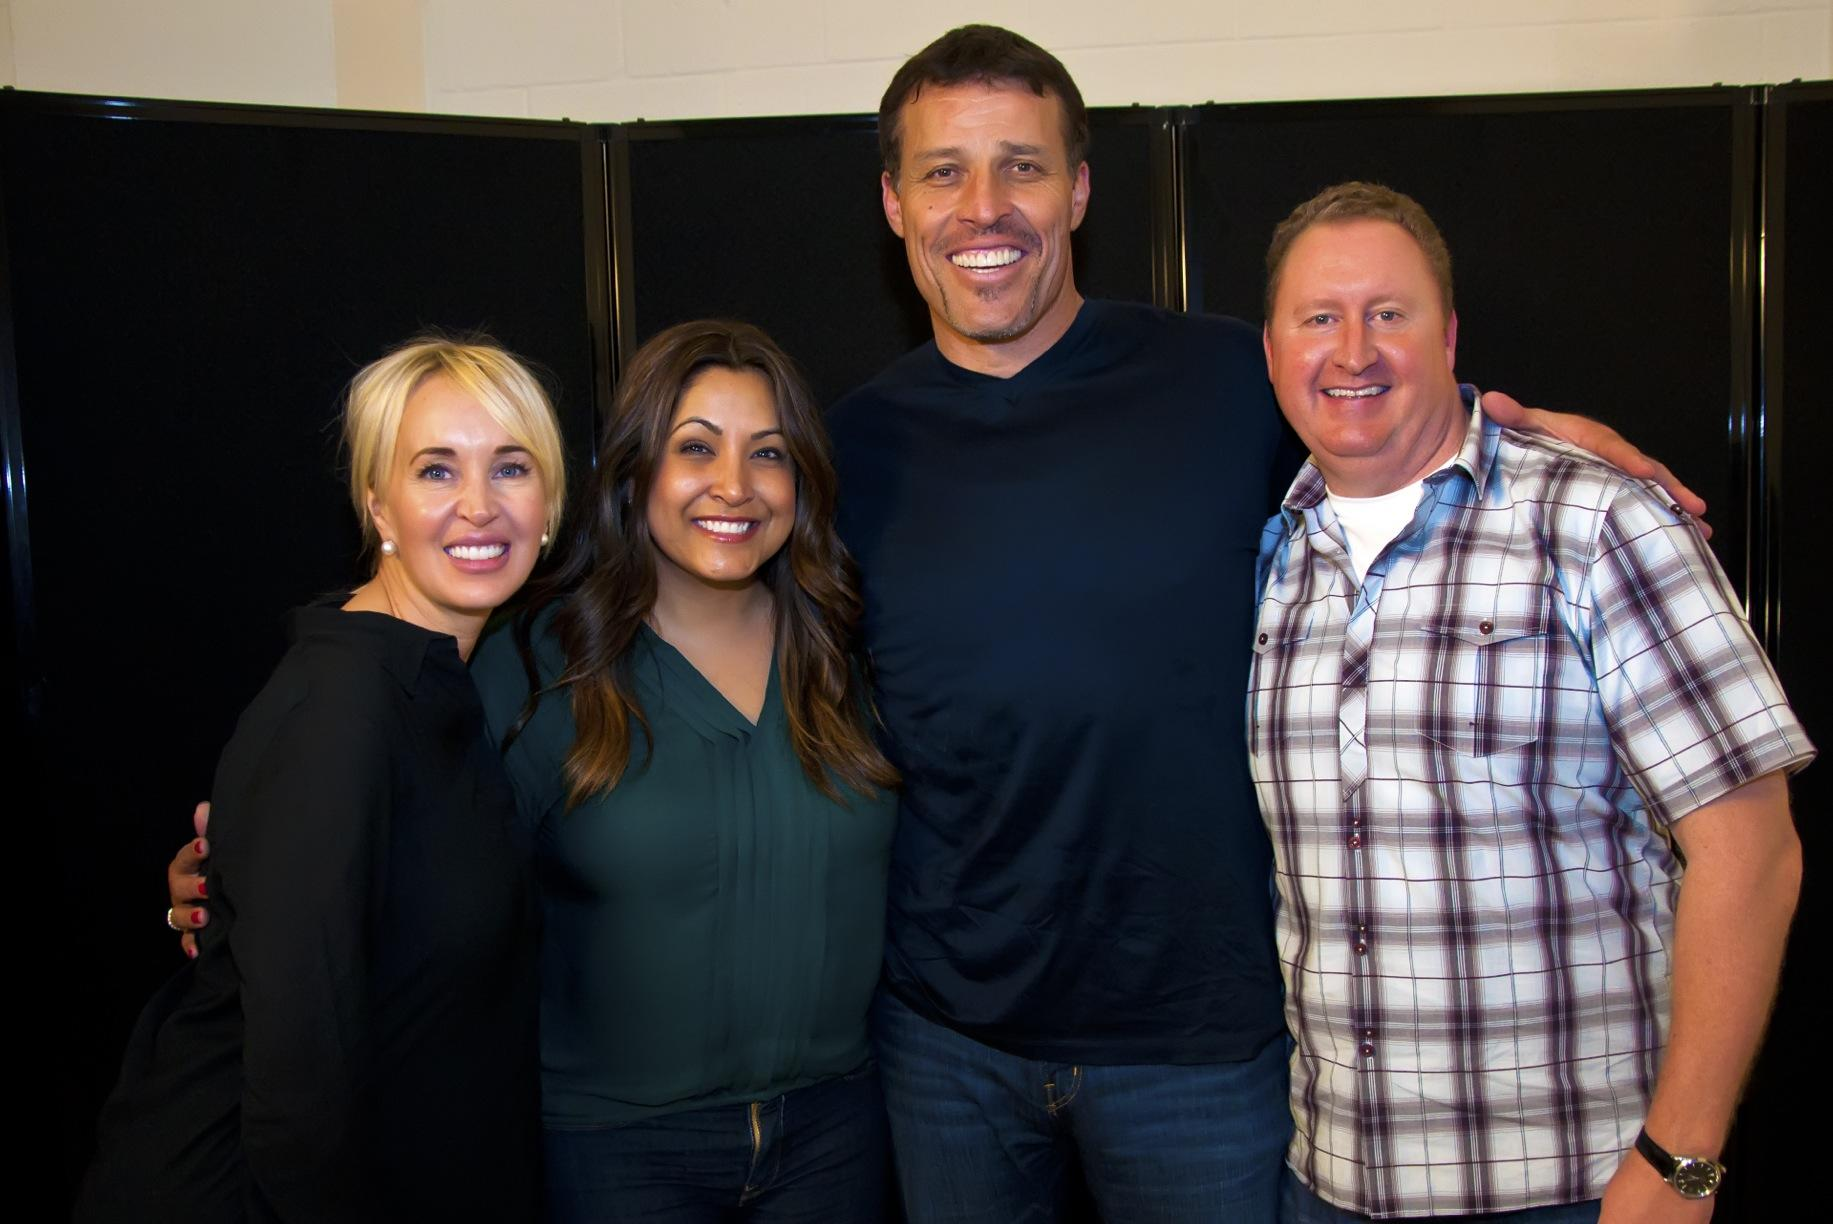 Tony robbins family guy youtube